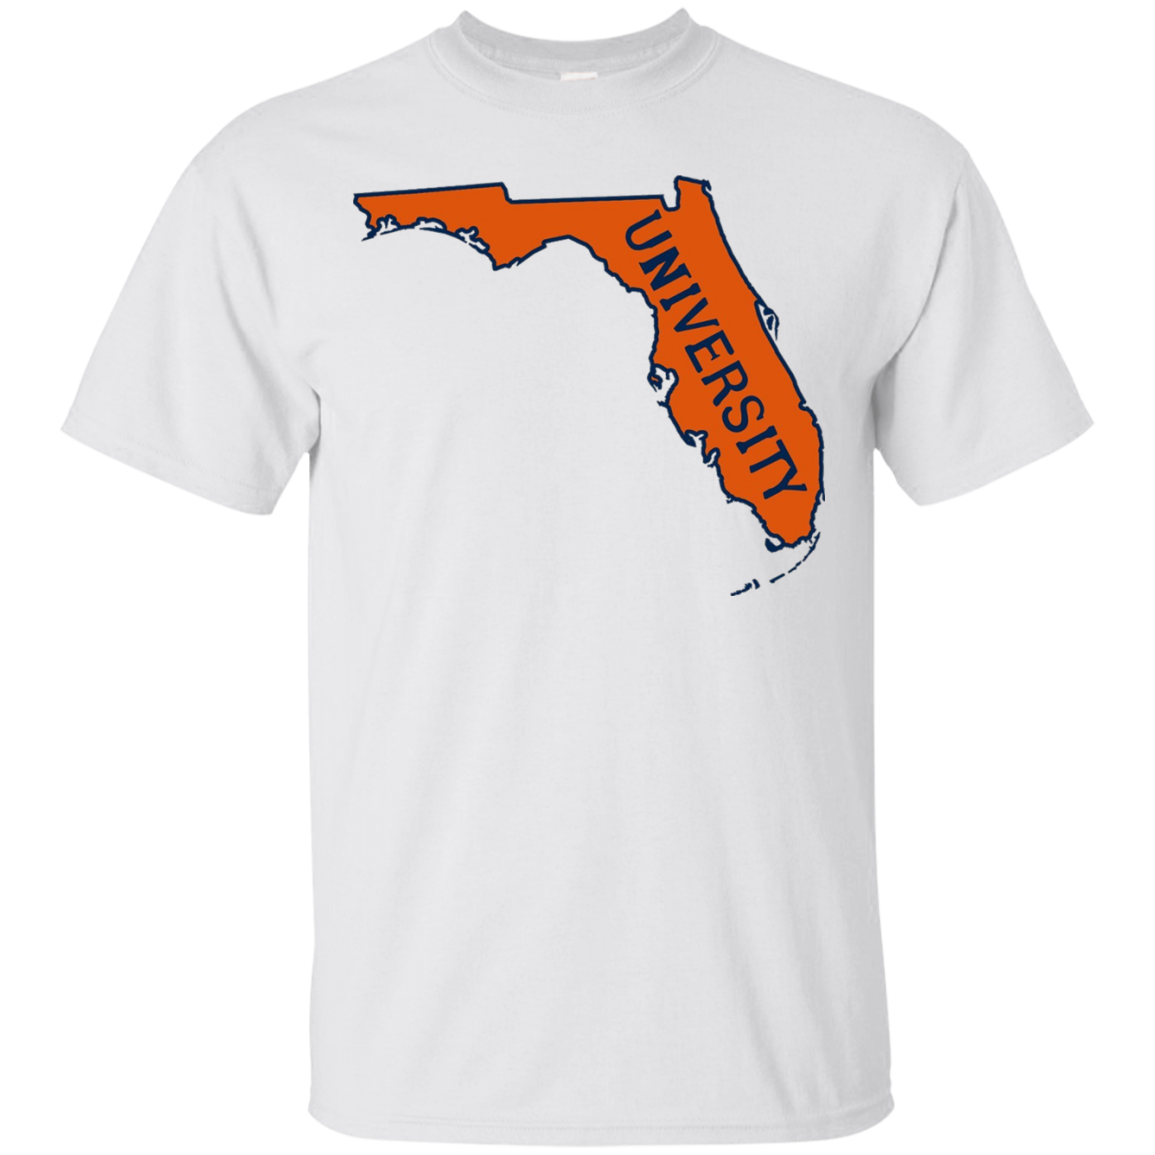 Florida Gators Fans. T-Shirt. Sizes Up To 3XL.